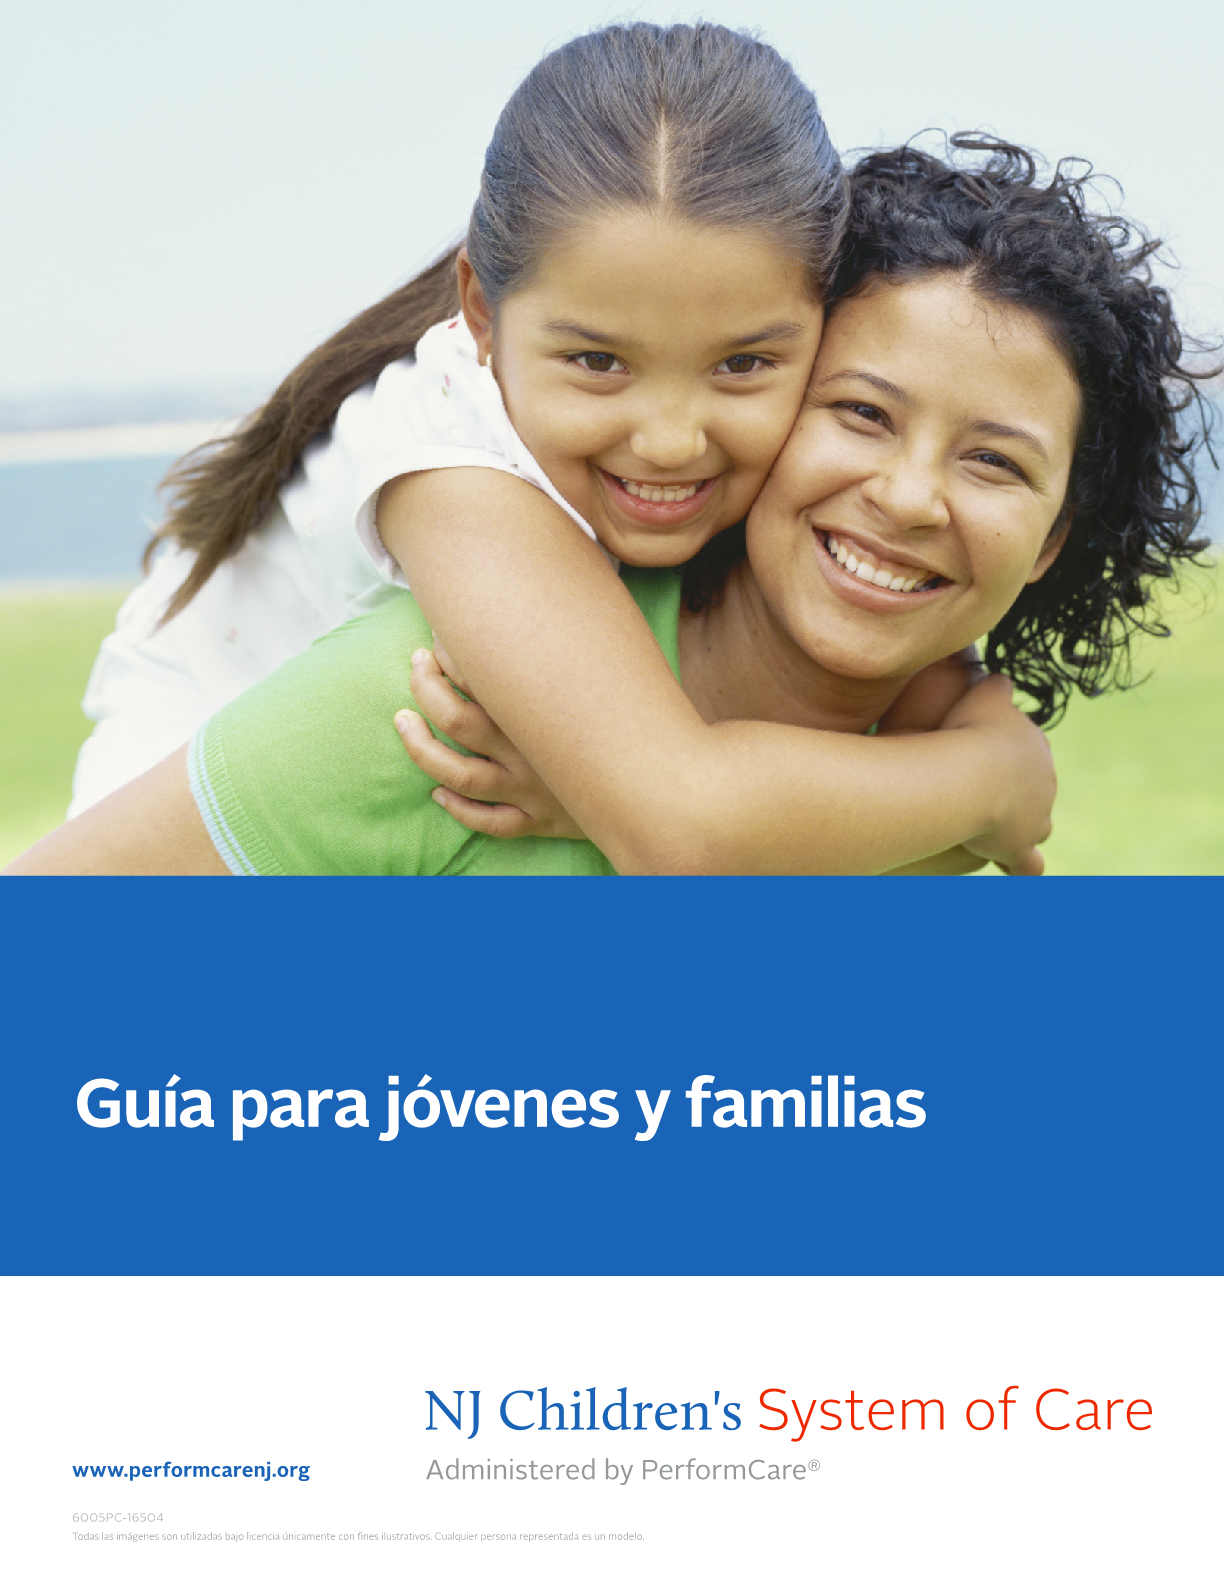 Youth and Family Guide - Spanish